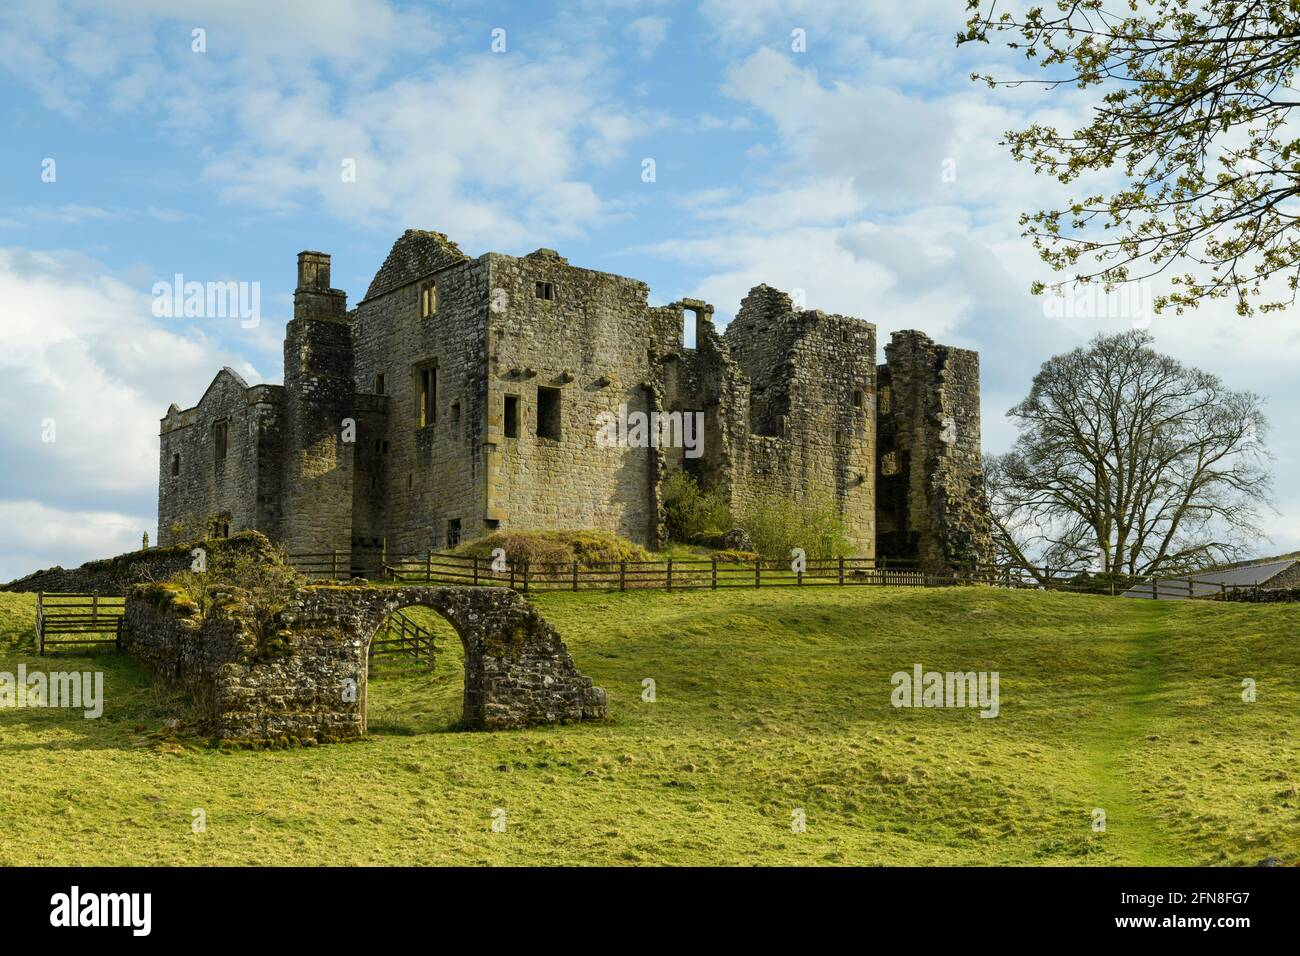 Barden Tower (sunlight on beautiful historic ancient hunting lodge ruin & blue sky) - scenic rural Bolton Abbey Estate, Yorkshire Dales, England UK. Stock Photo